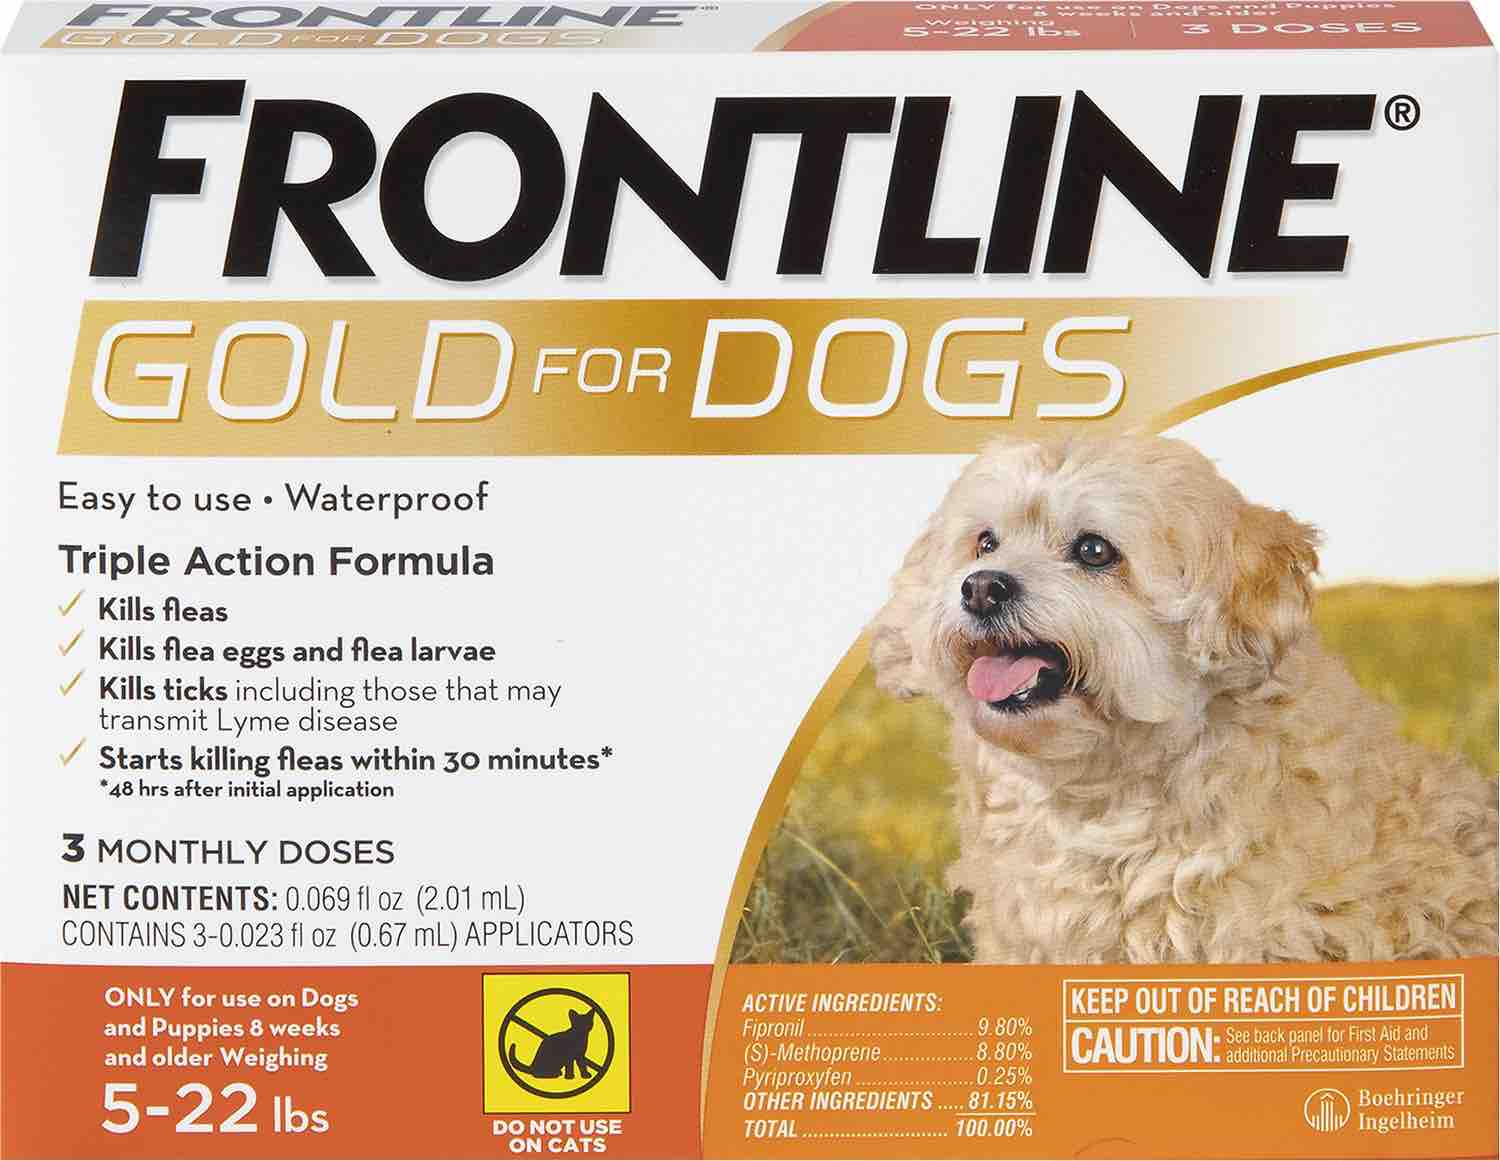 Frontline Gold for Dogs 3 doses 5-22 lbs (Orange) 1